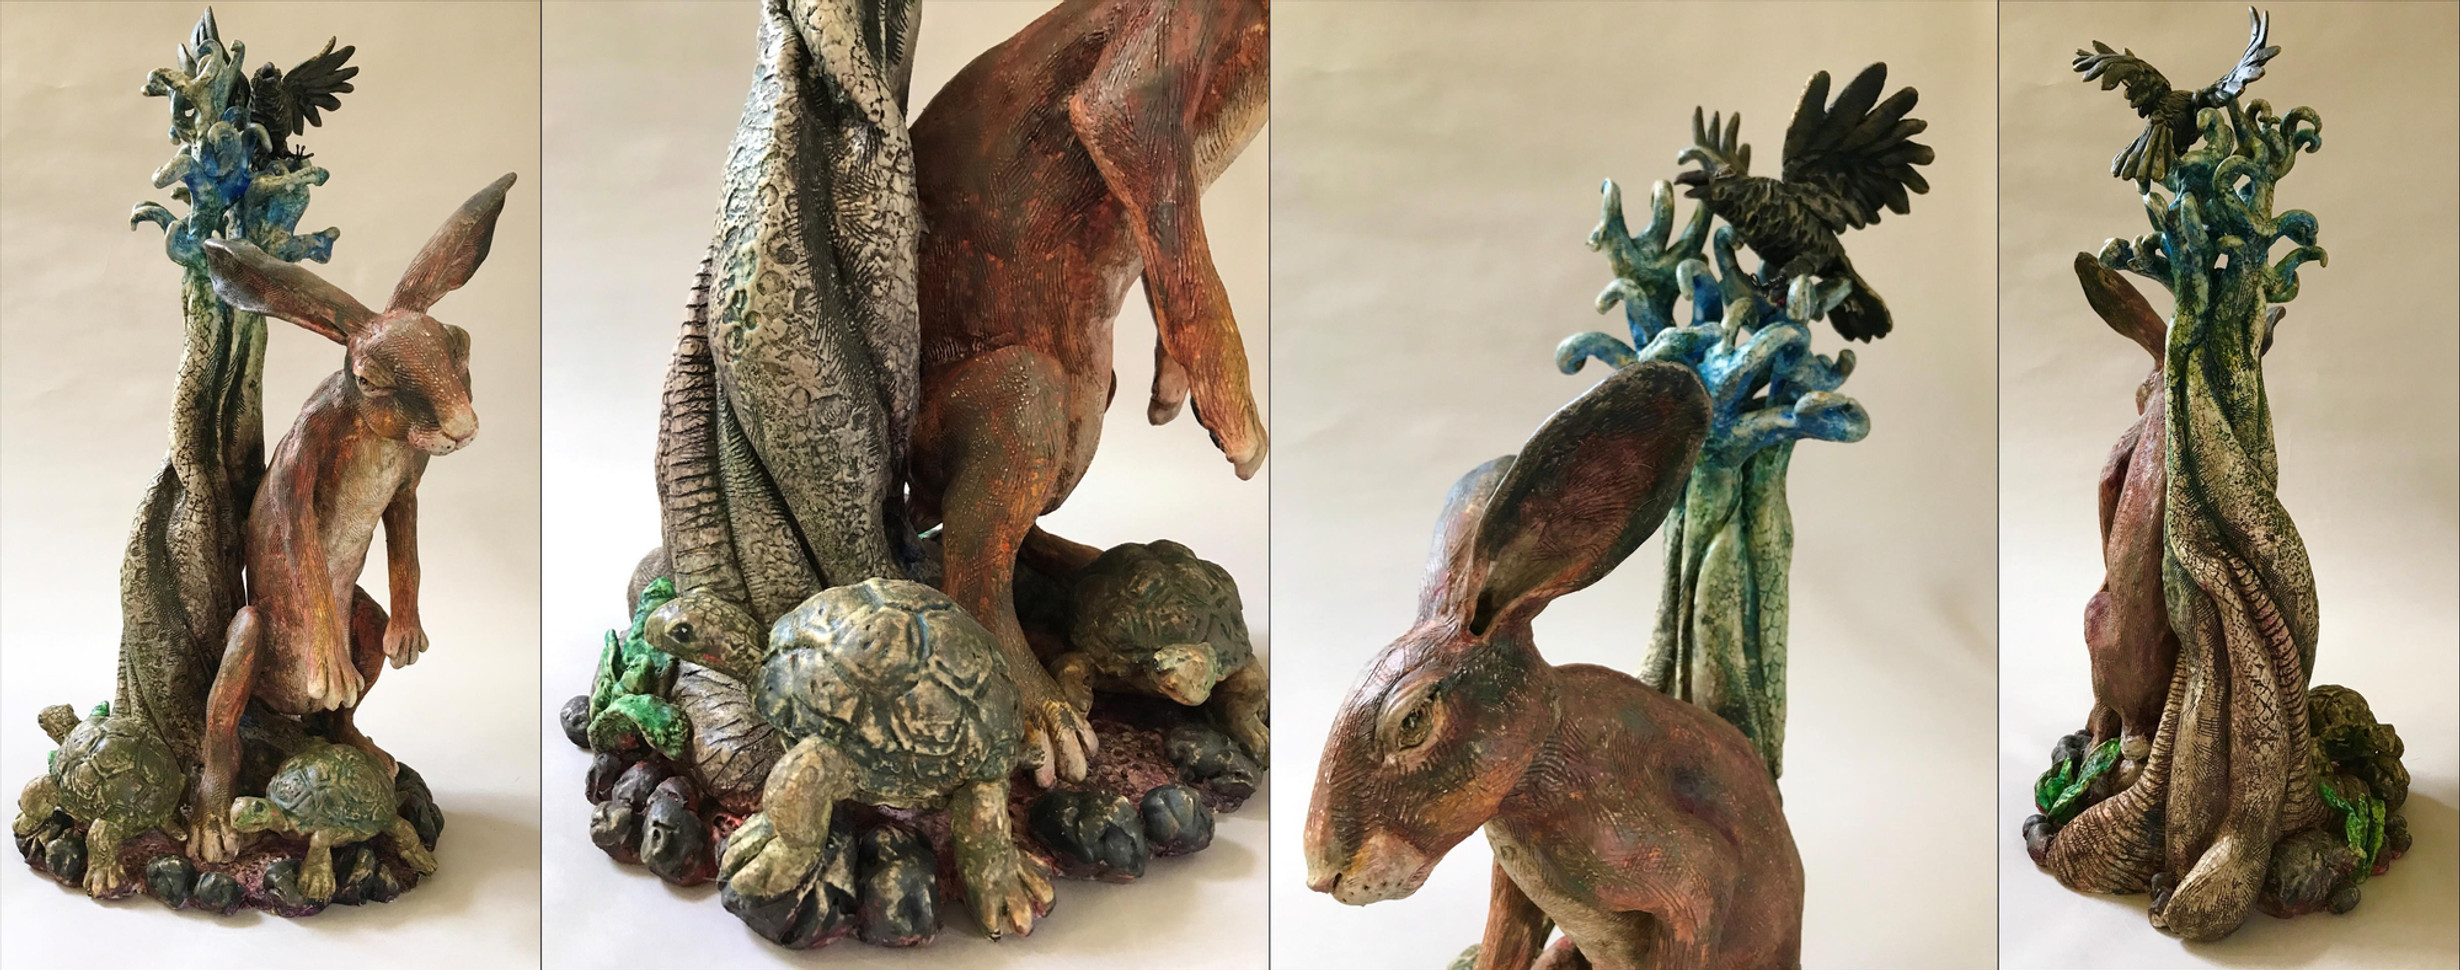 "Amy Morgan (Clovis) A Novel Fable: Hare Ecounters a Fork in the Roadrace ceramic and acrylic, 20"" x 11"" x 10"" $500"